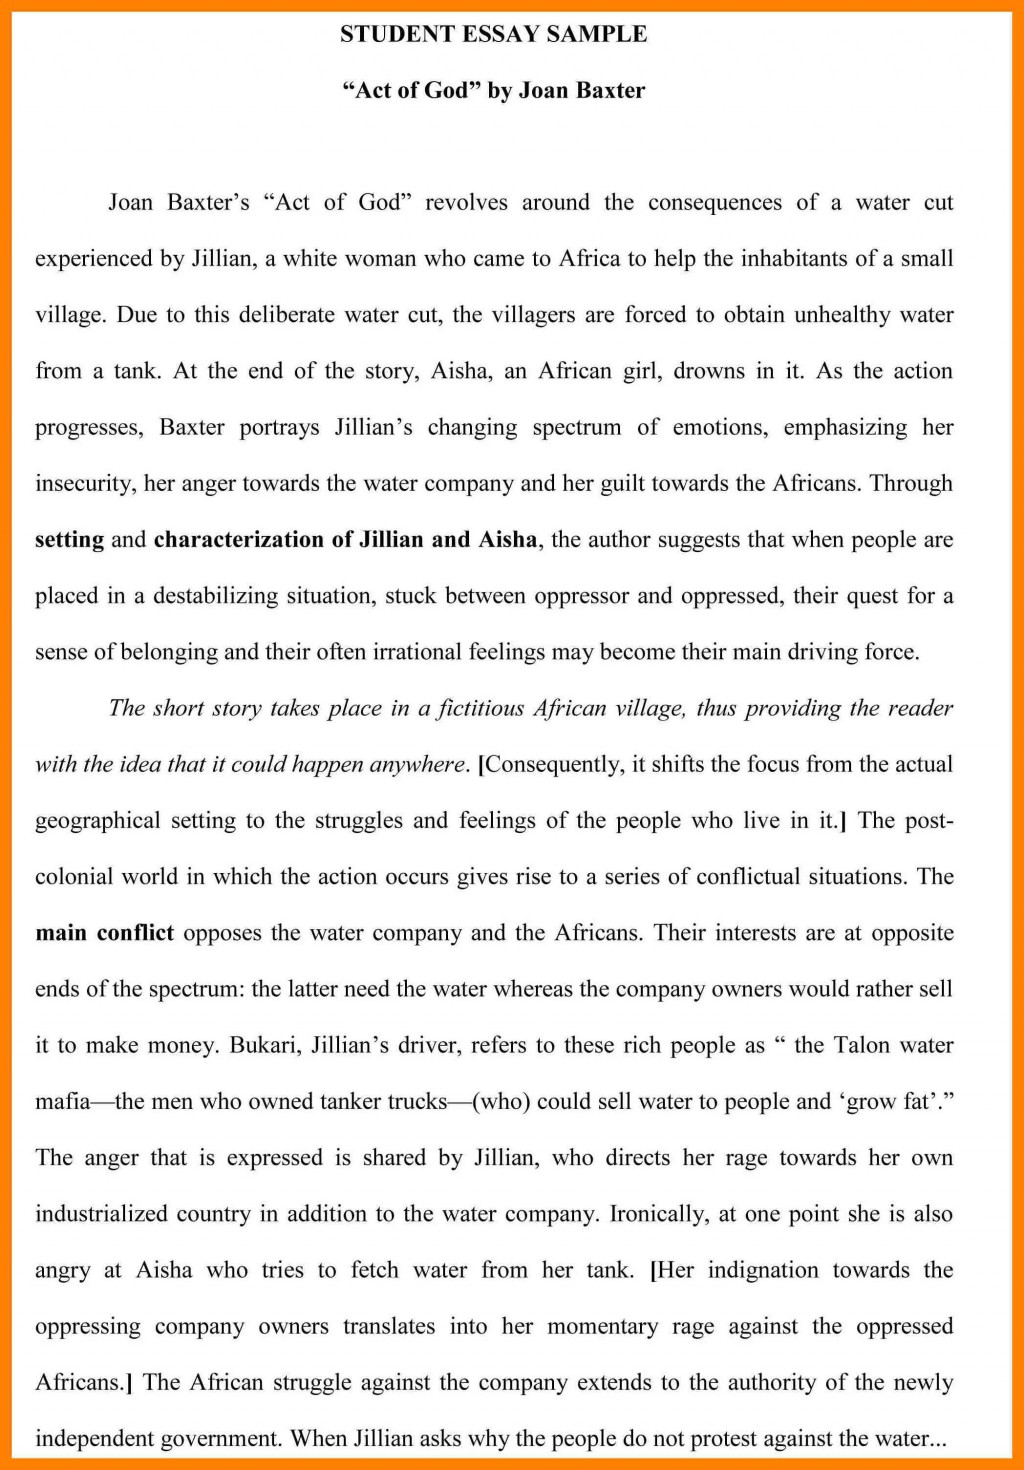 002 Sample Math Test Act Elmifermetures Com Ideas Collection Essay Awesome Of Livesto Essays Pdf New Topics Example Fearsome Examples Good Score Average Large